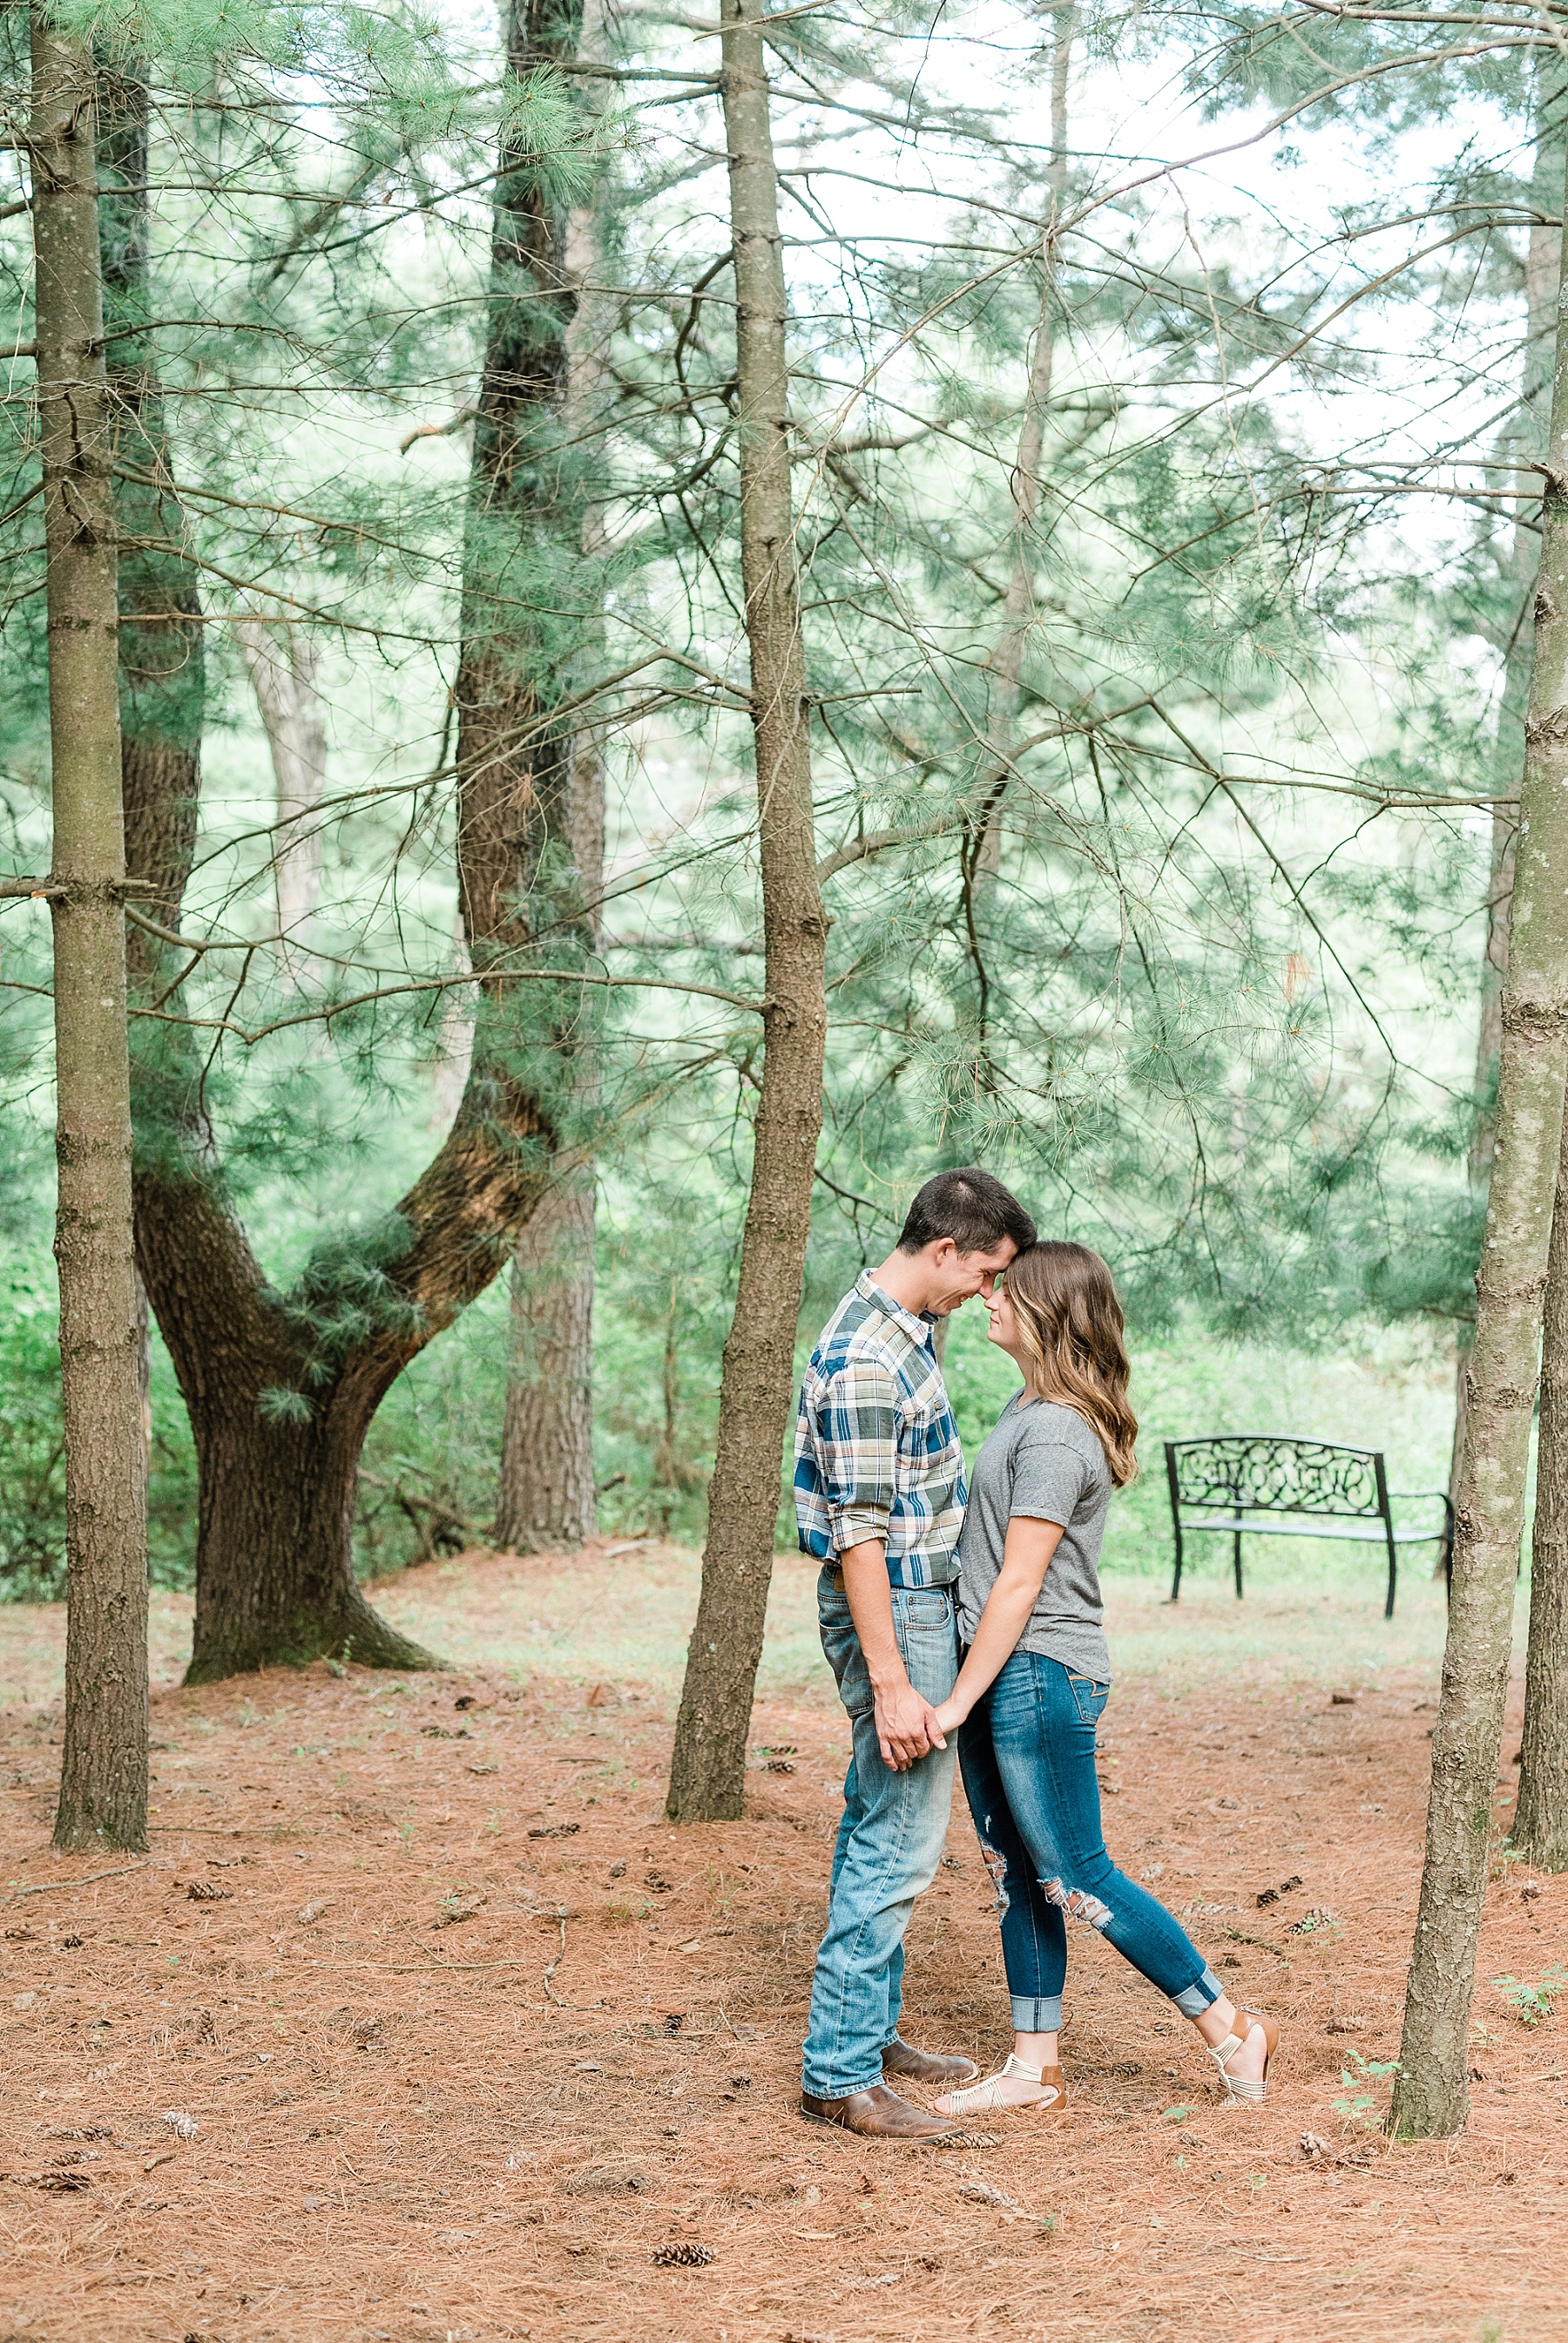 Wanderlust Engagement Session in the Pines with Sunset Canoe Ride in Blue Green Lake in Mid Missouri by Kelsi Kliethermes Photography_0007.jpg